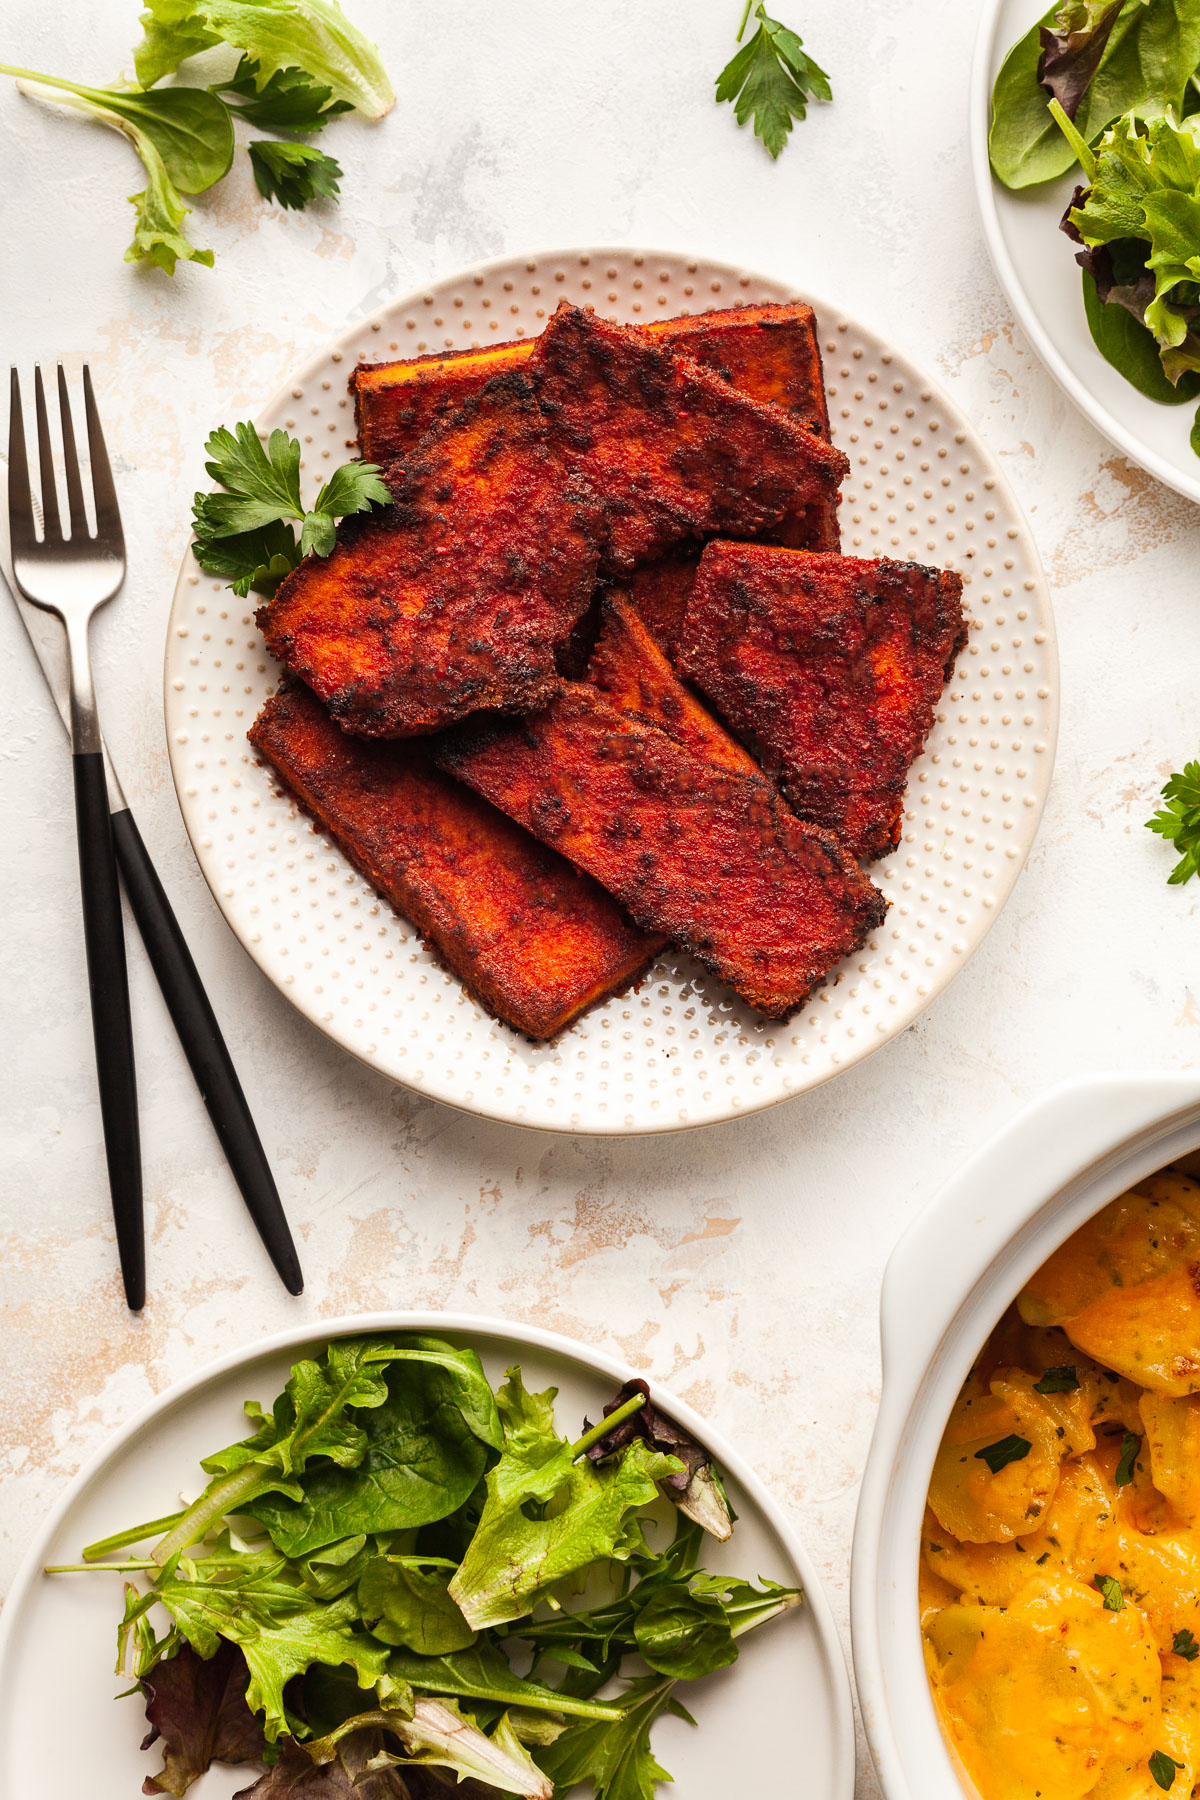 image of vegan tofu ham on plate with side dishes on the side